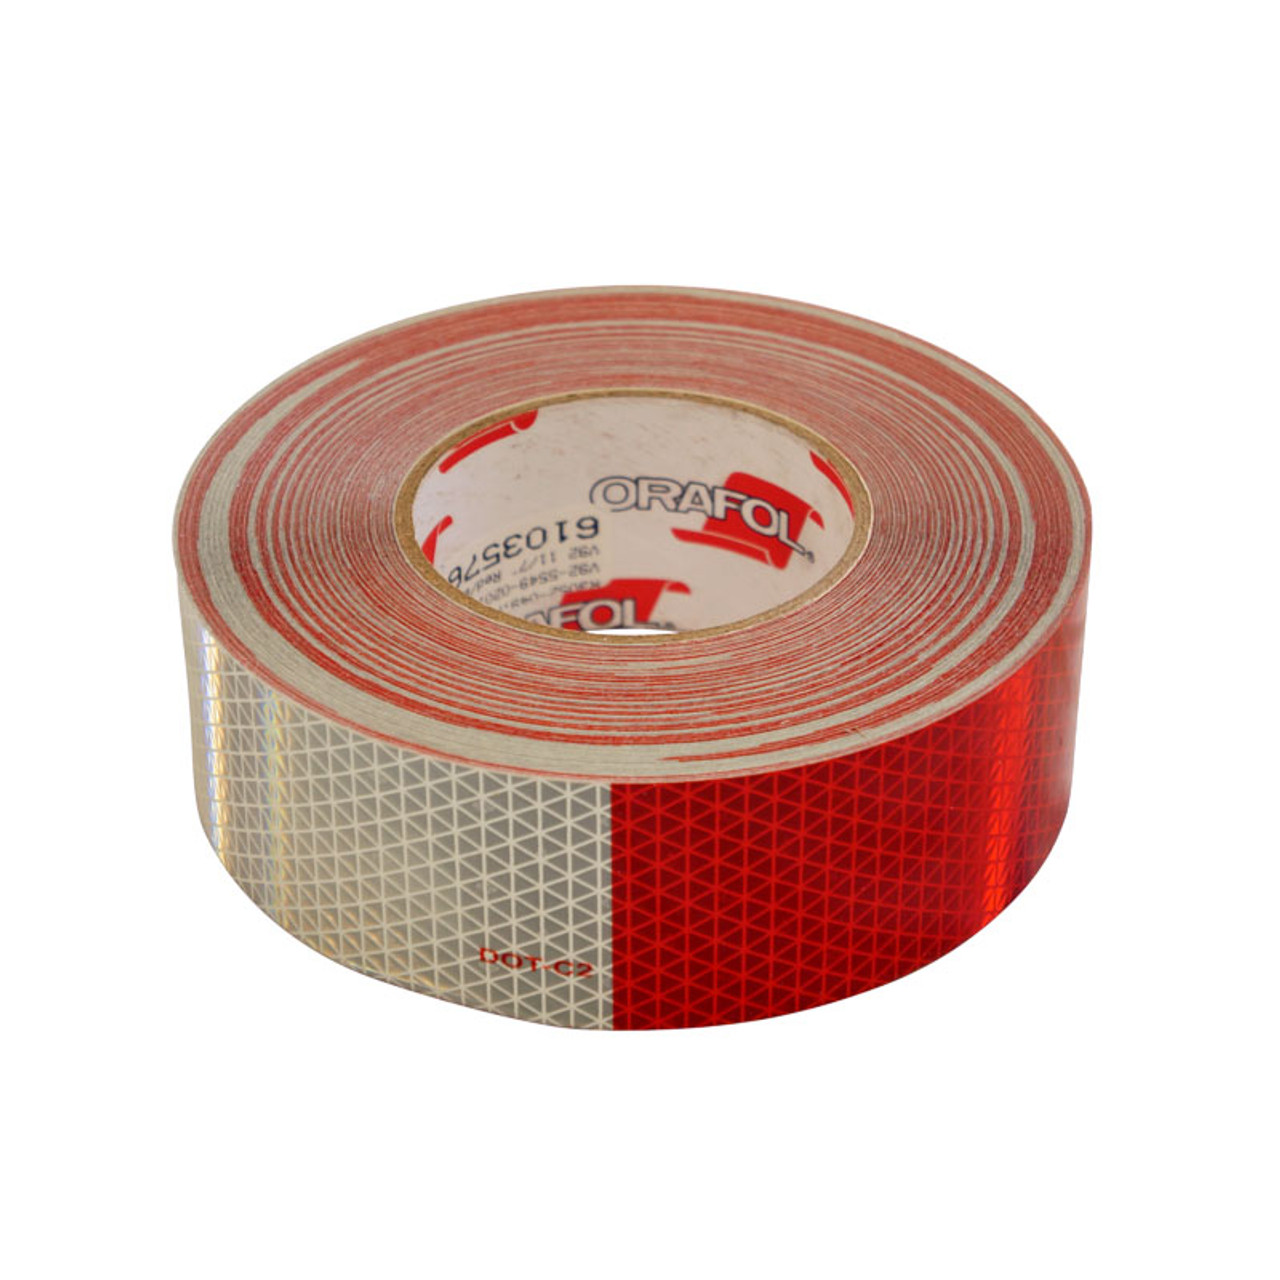 REFV92-5549-020150BX /  7IN WH/11IN RED TAPE 150FT ROLL/ ORALITE